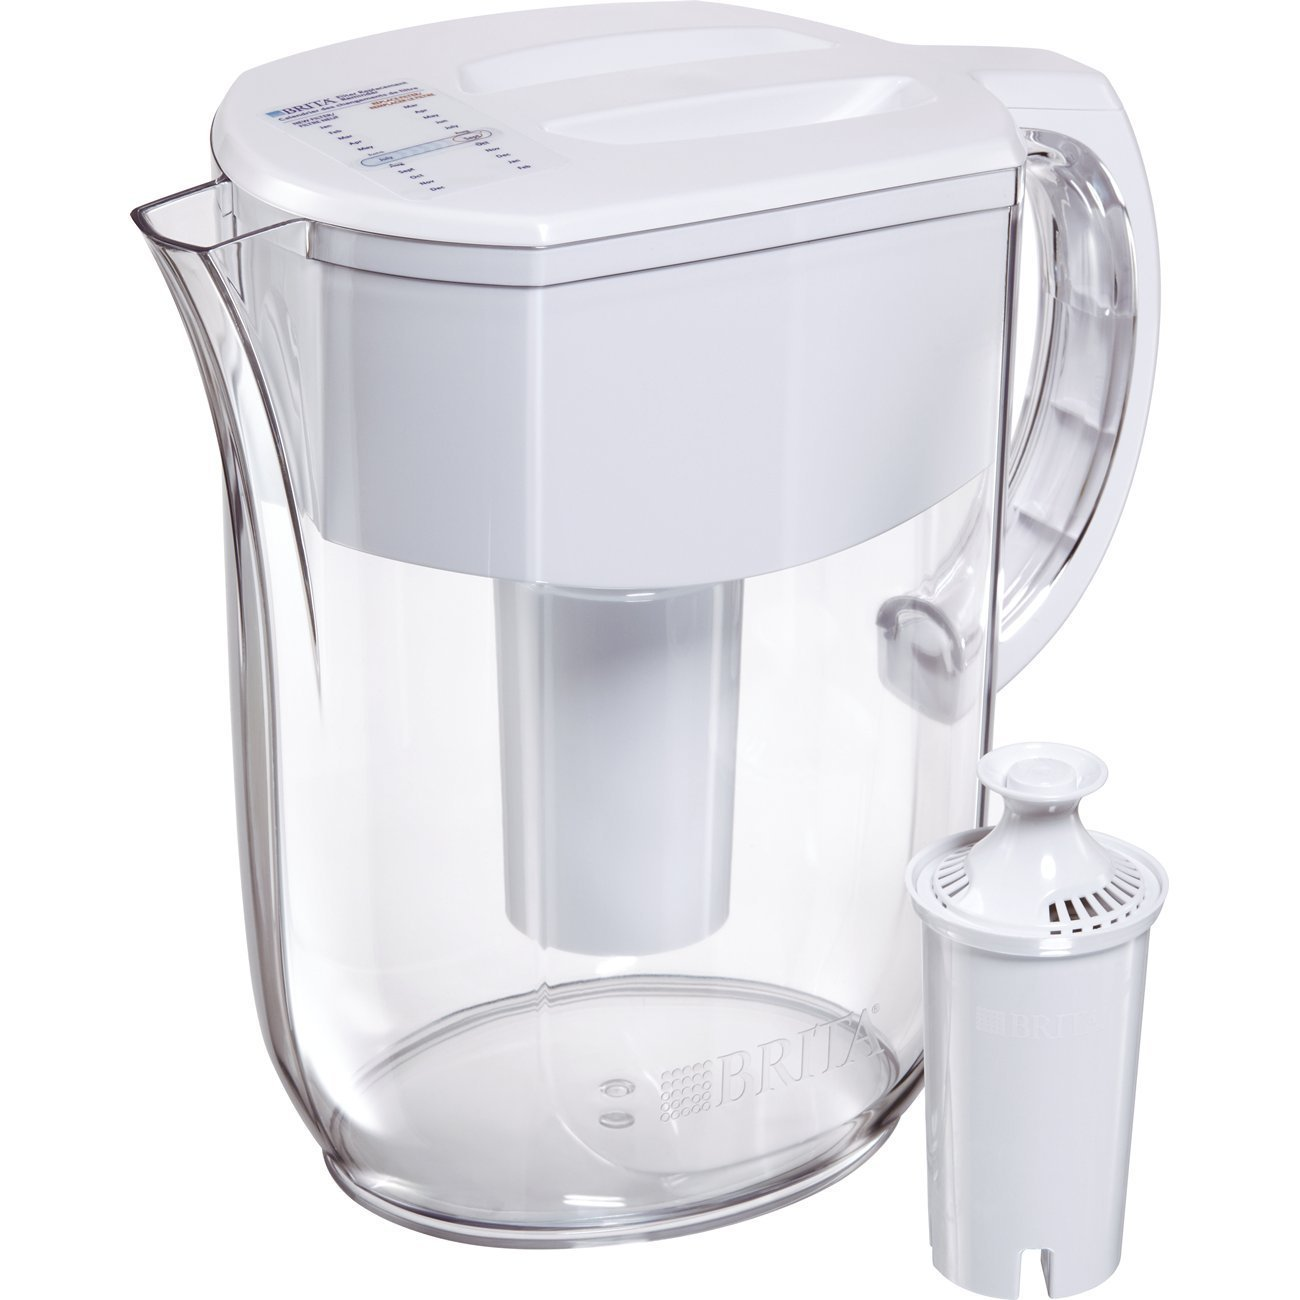 Ms Kelly Brita Large 10 Cup Everyday Water Pitcher with Filter - BPA Free - White